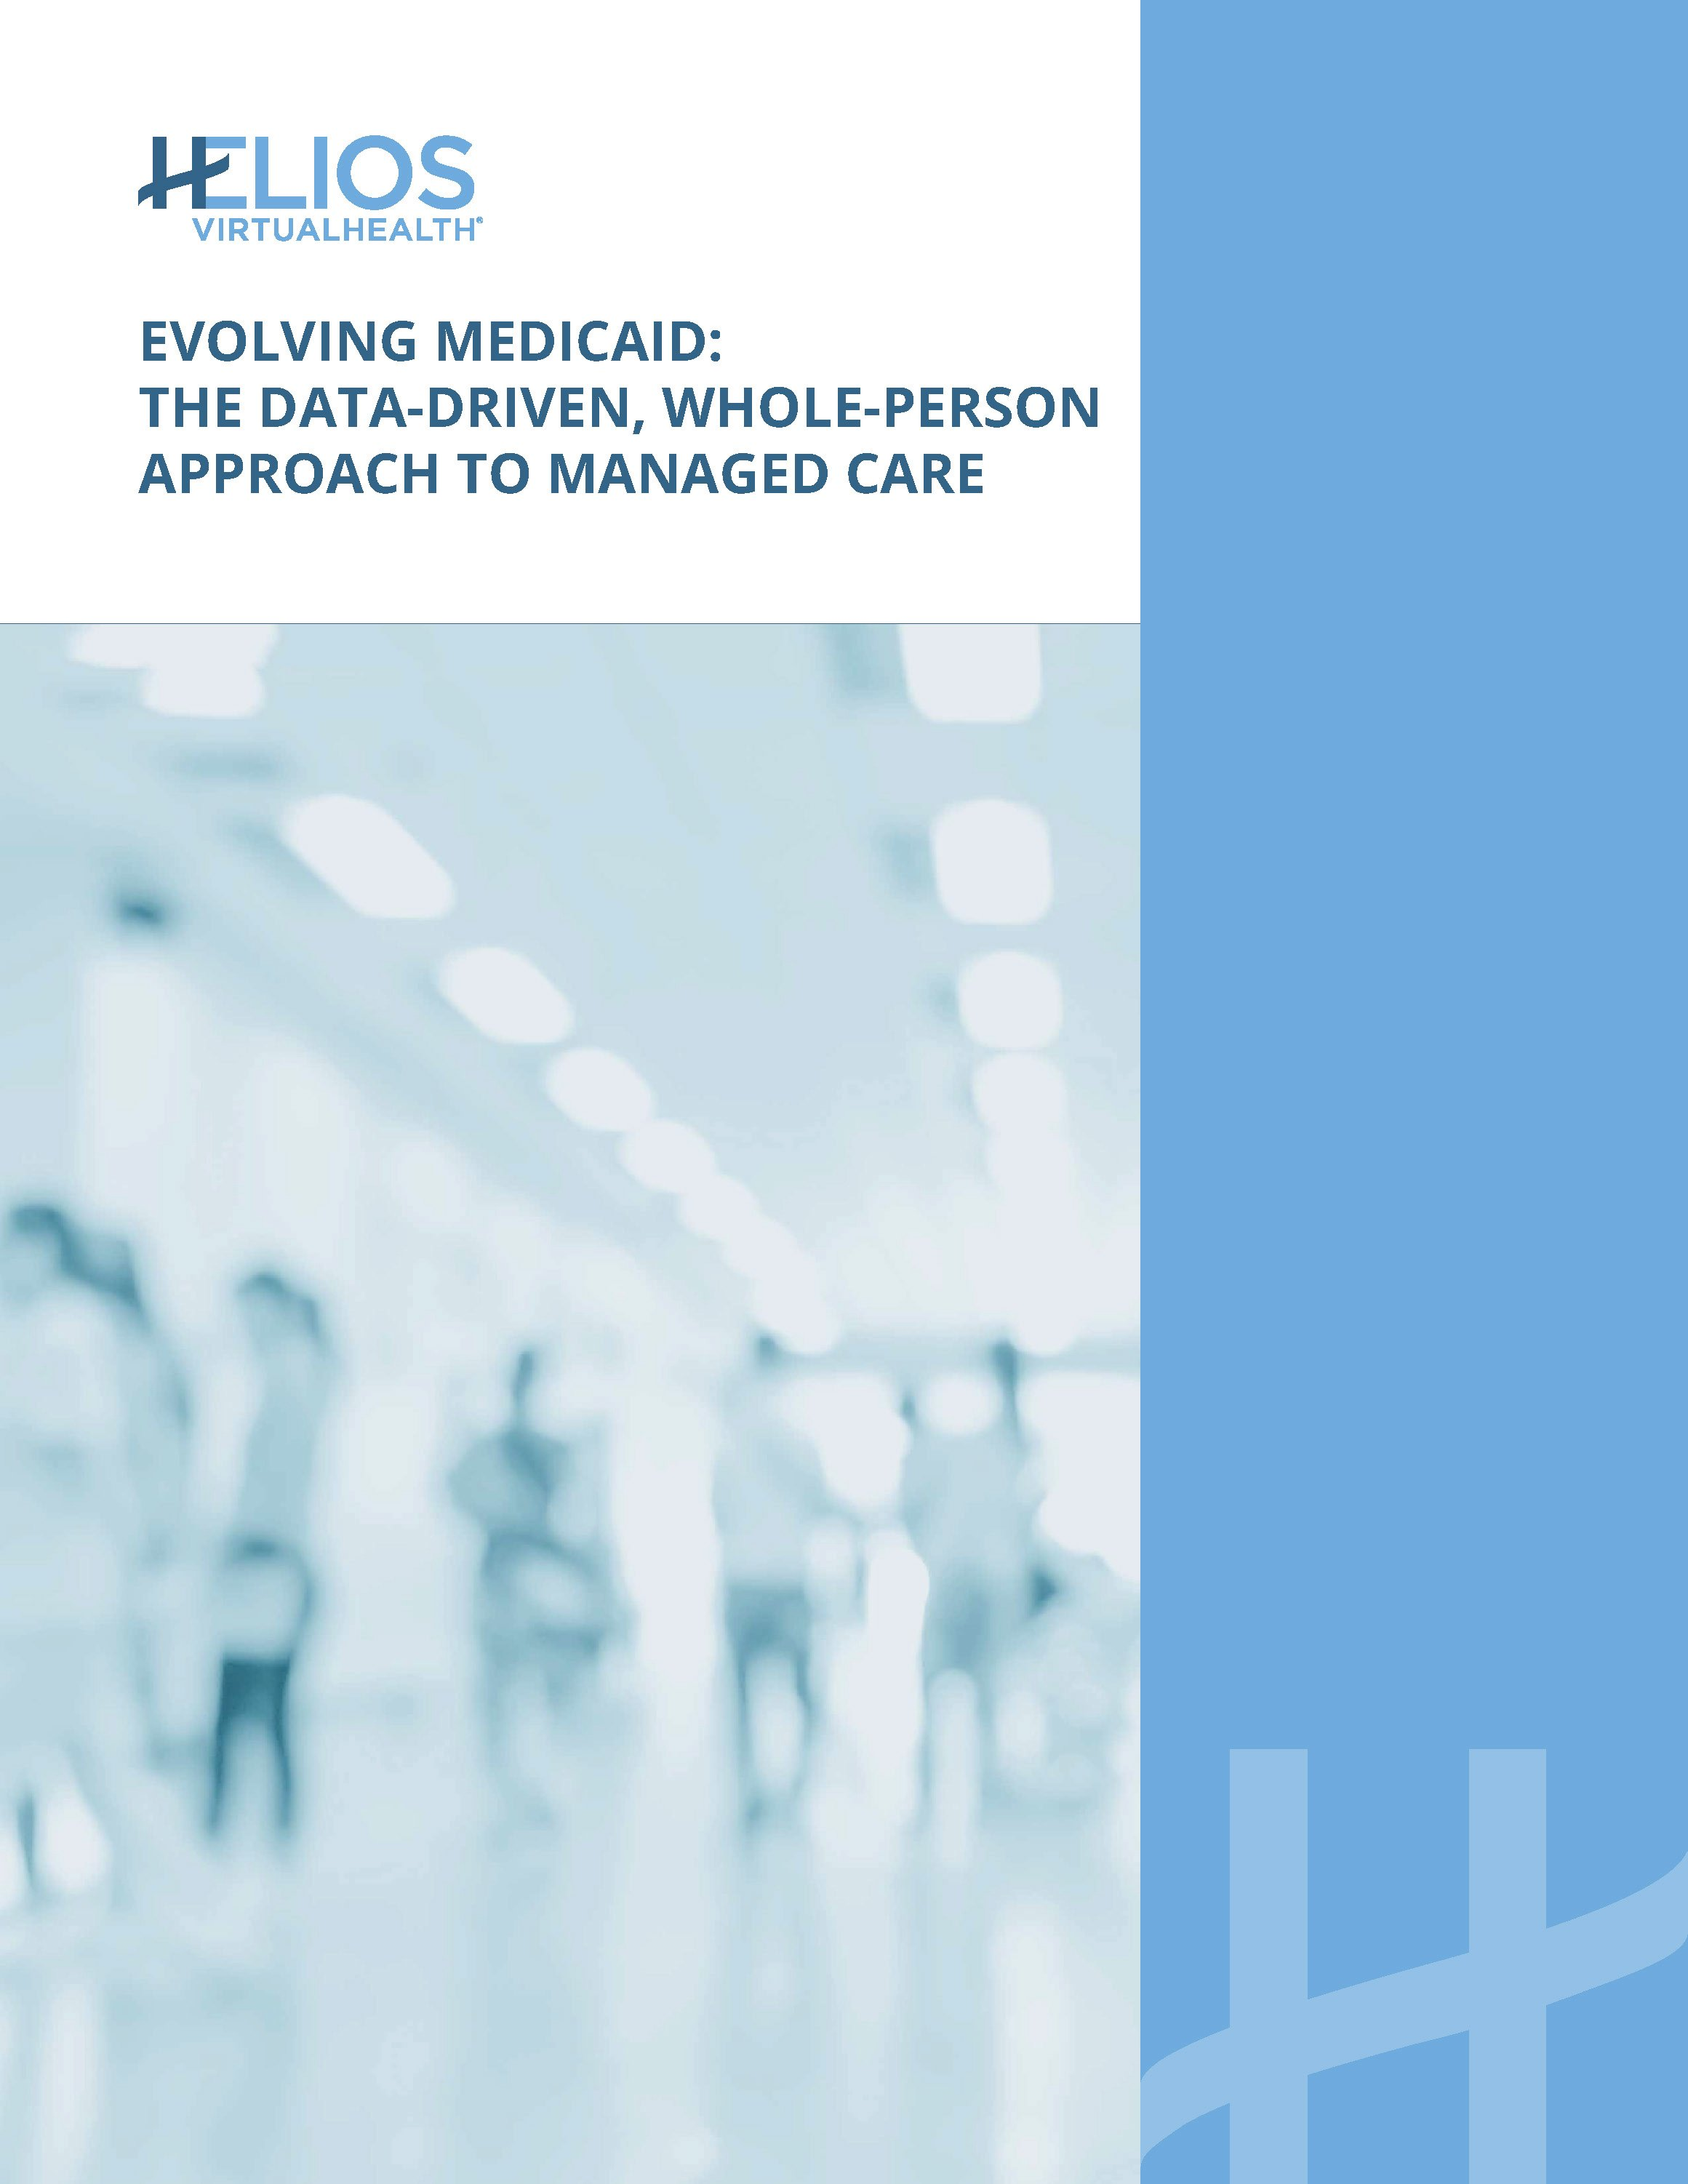 Transitioning State Medicaid to a Value-Based Managed Care Model